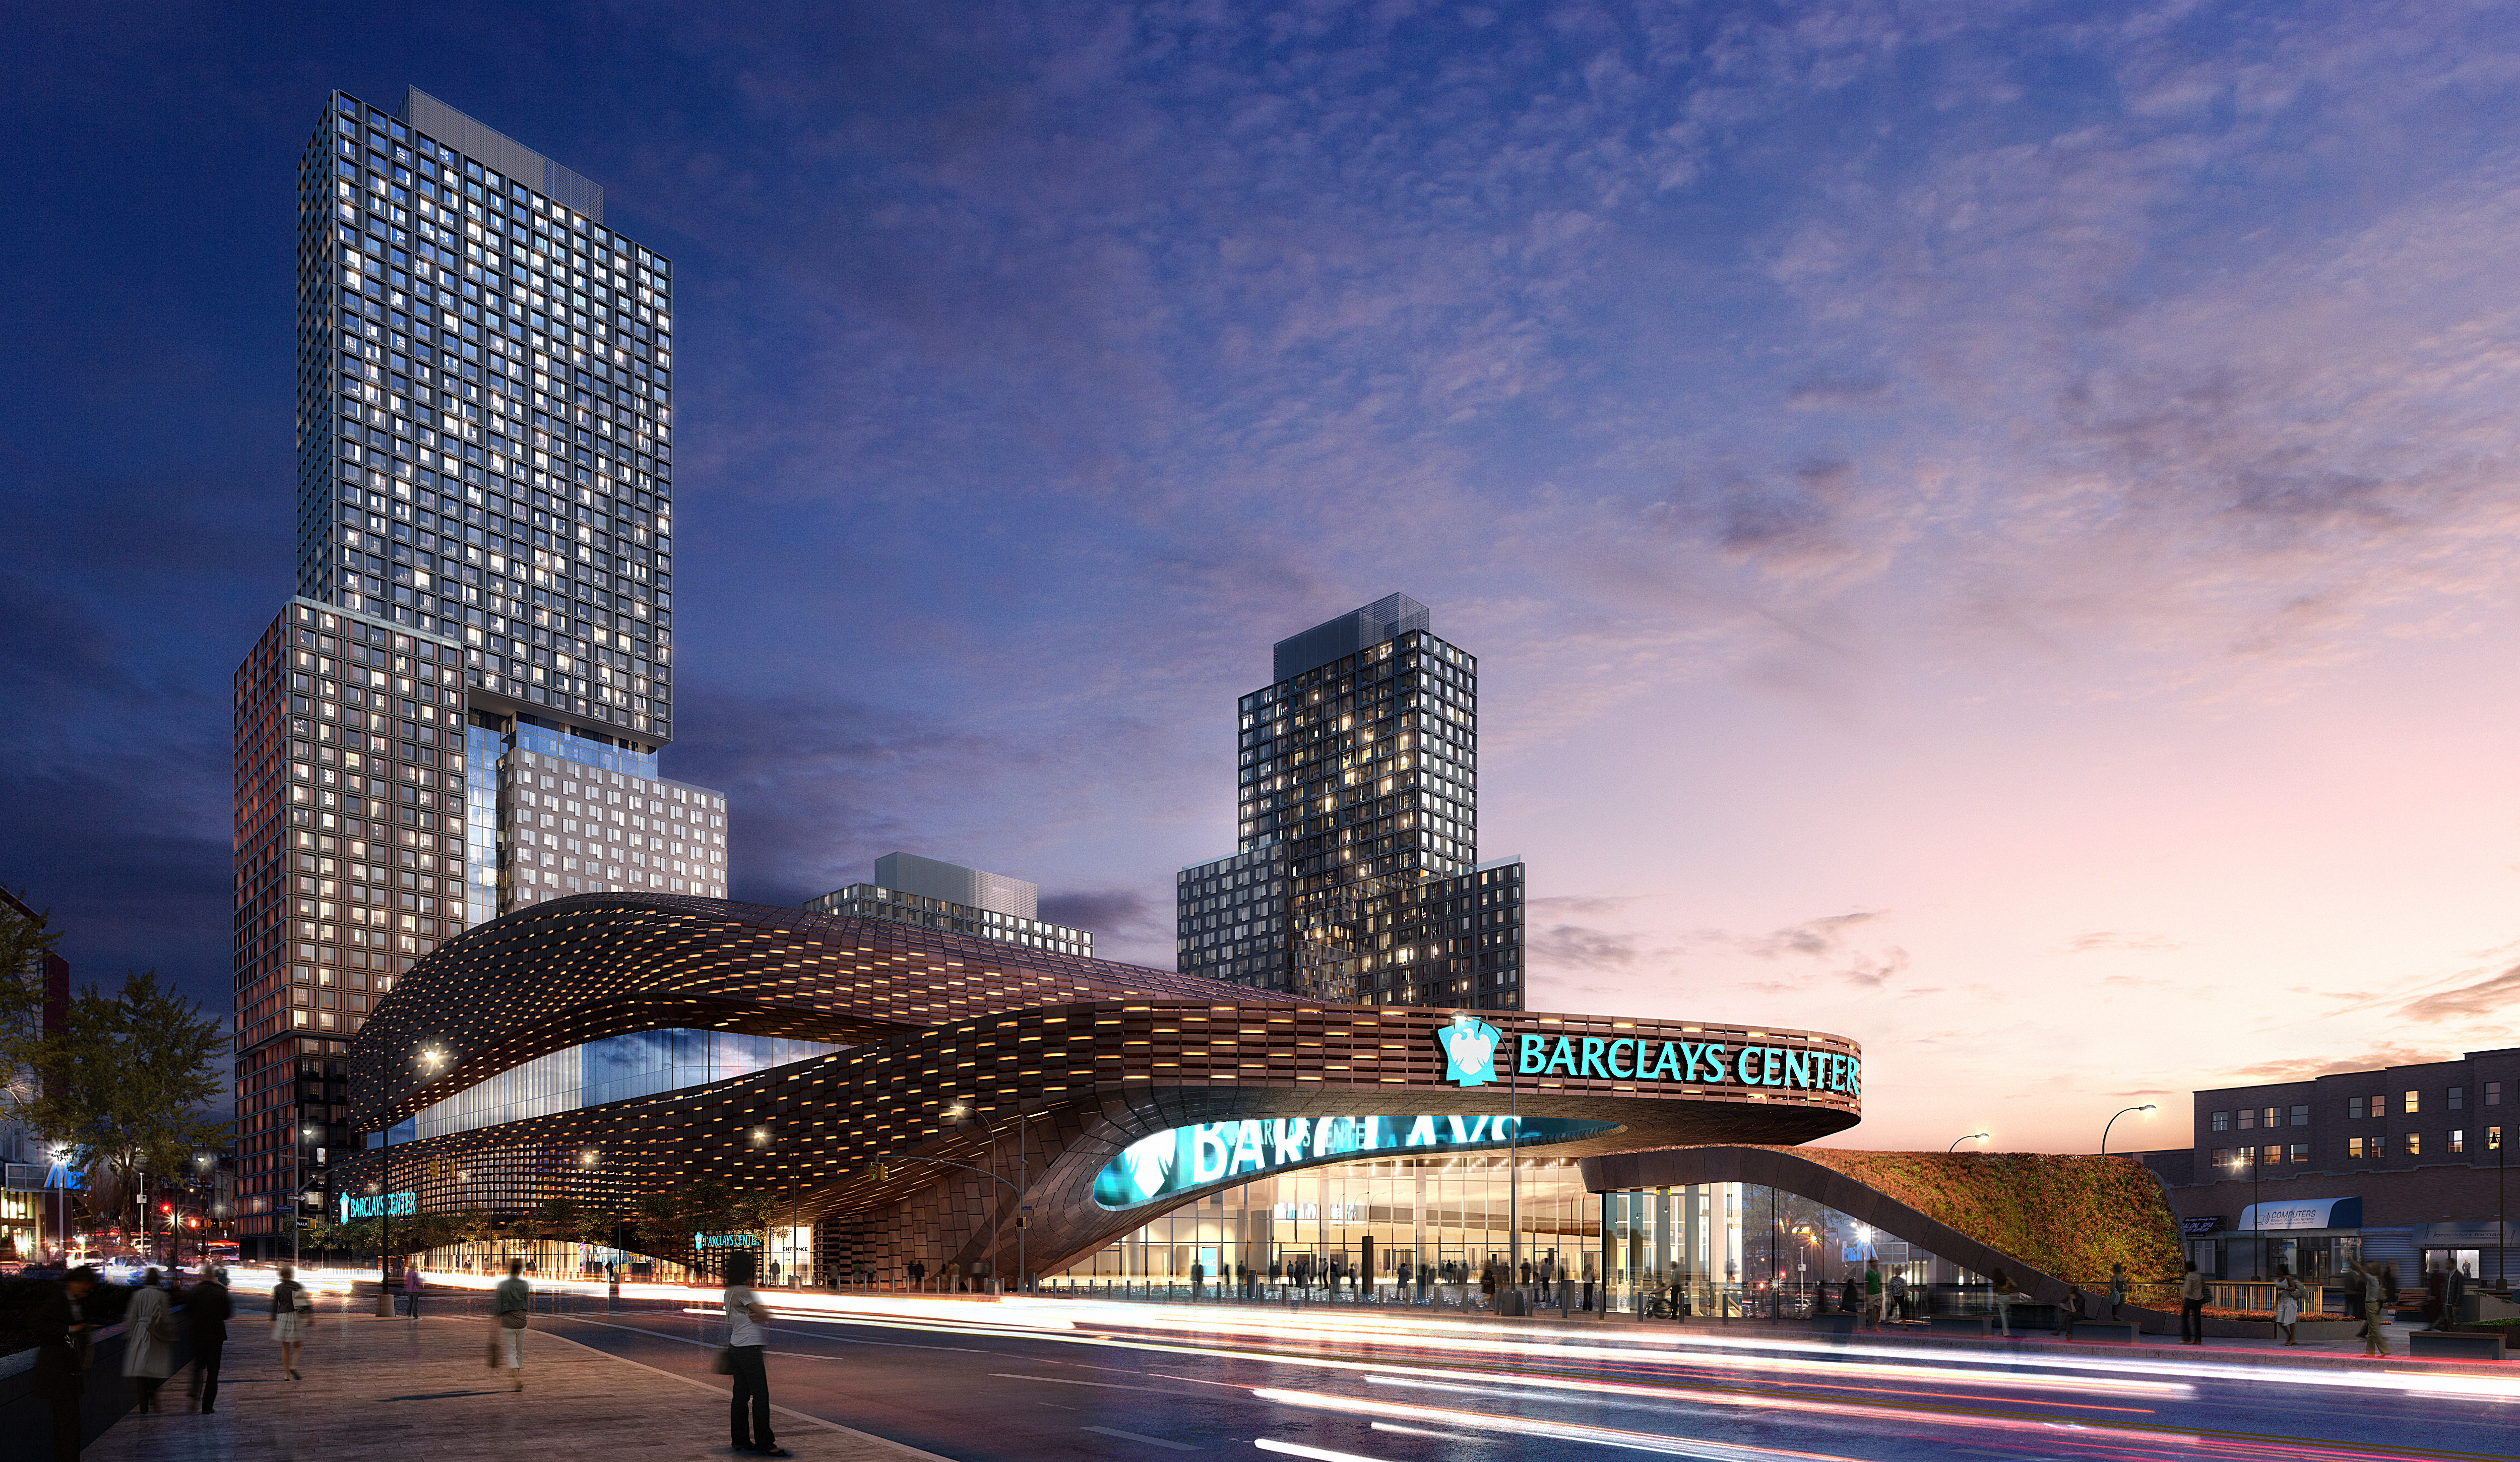 Barclays Center, Cisco and the Brooklyn Nets are Sports Technology pioneers - 3D via dbox SHoP